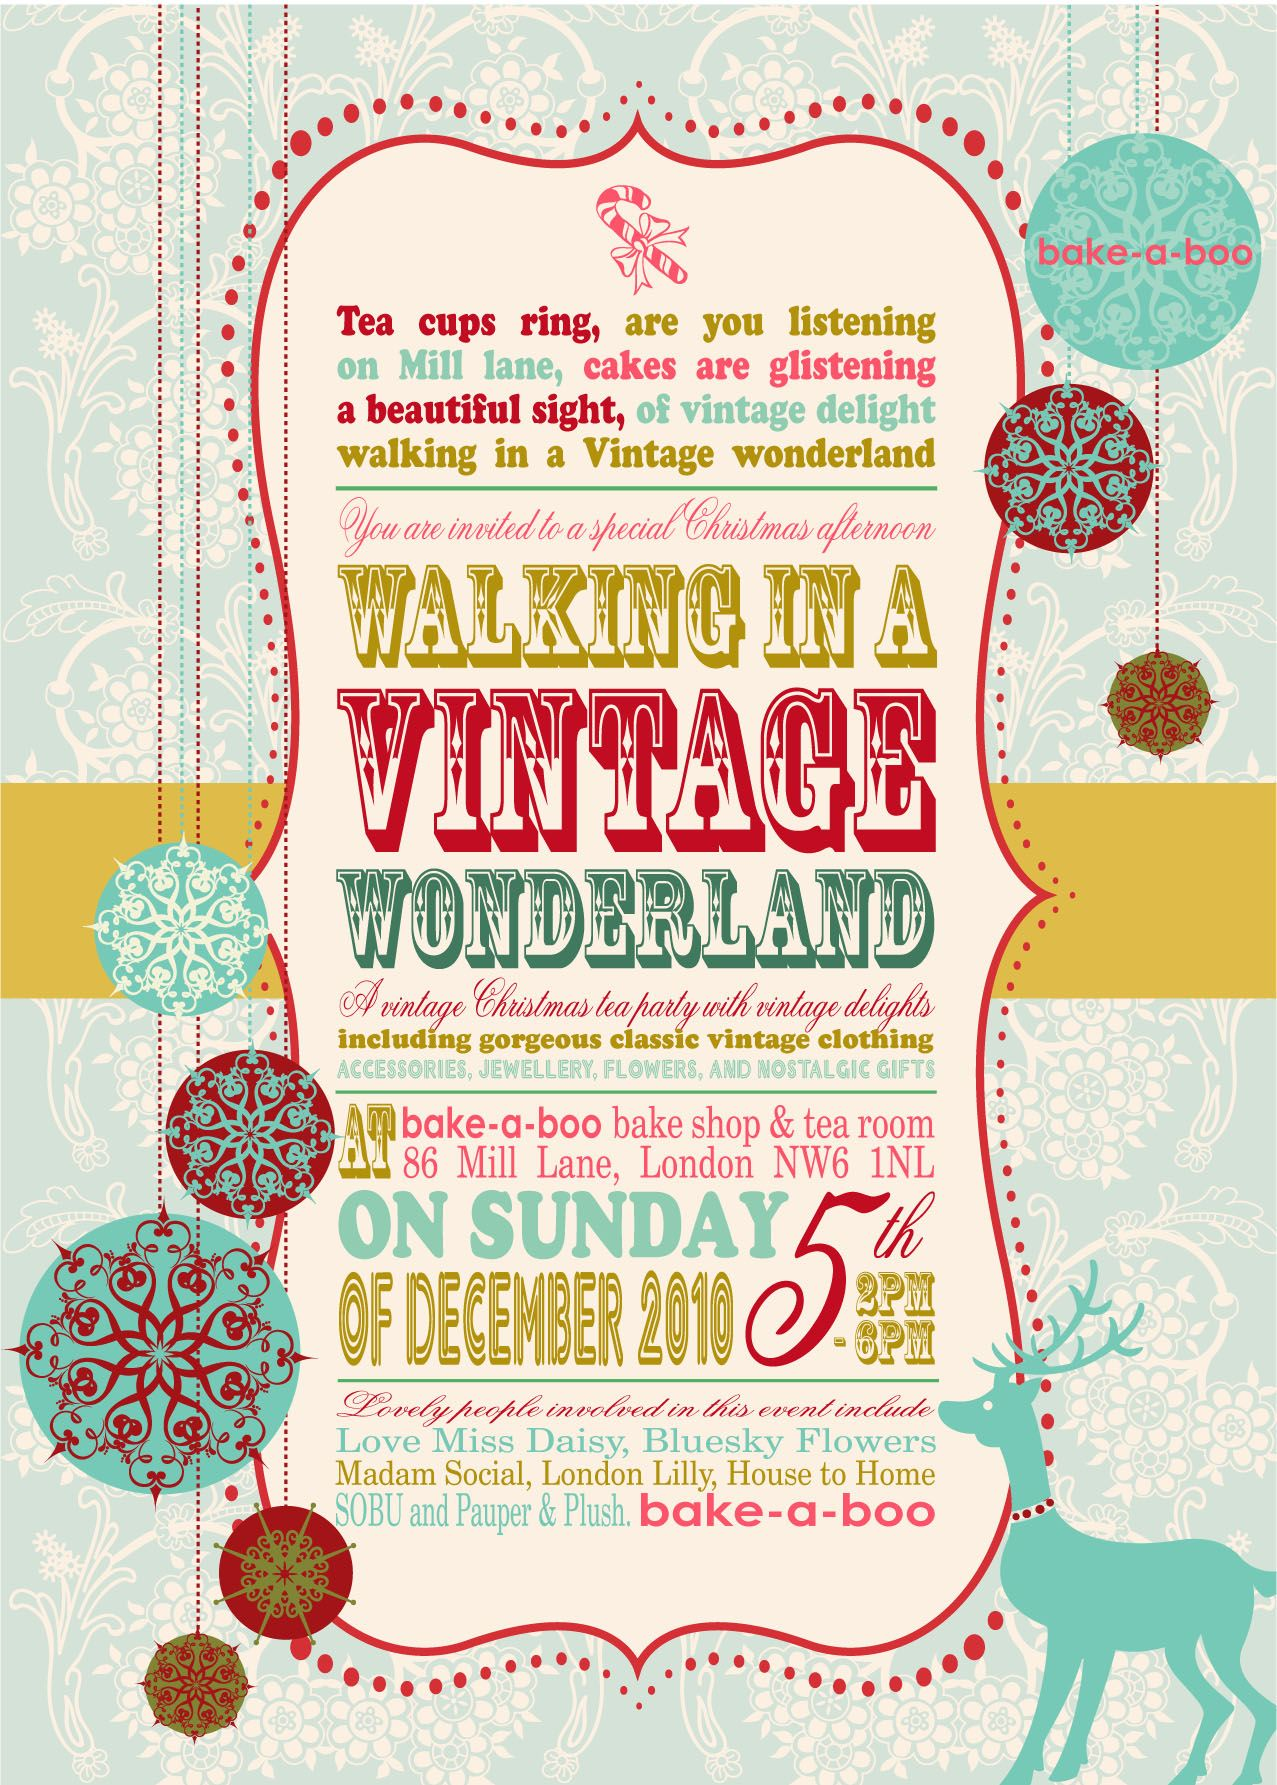 Retro Party Event Poster, like this but needs more typing space and less fuss?